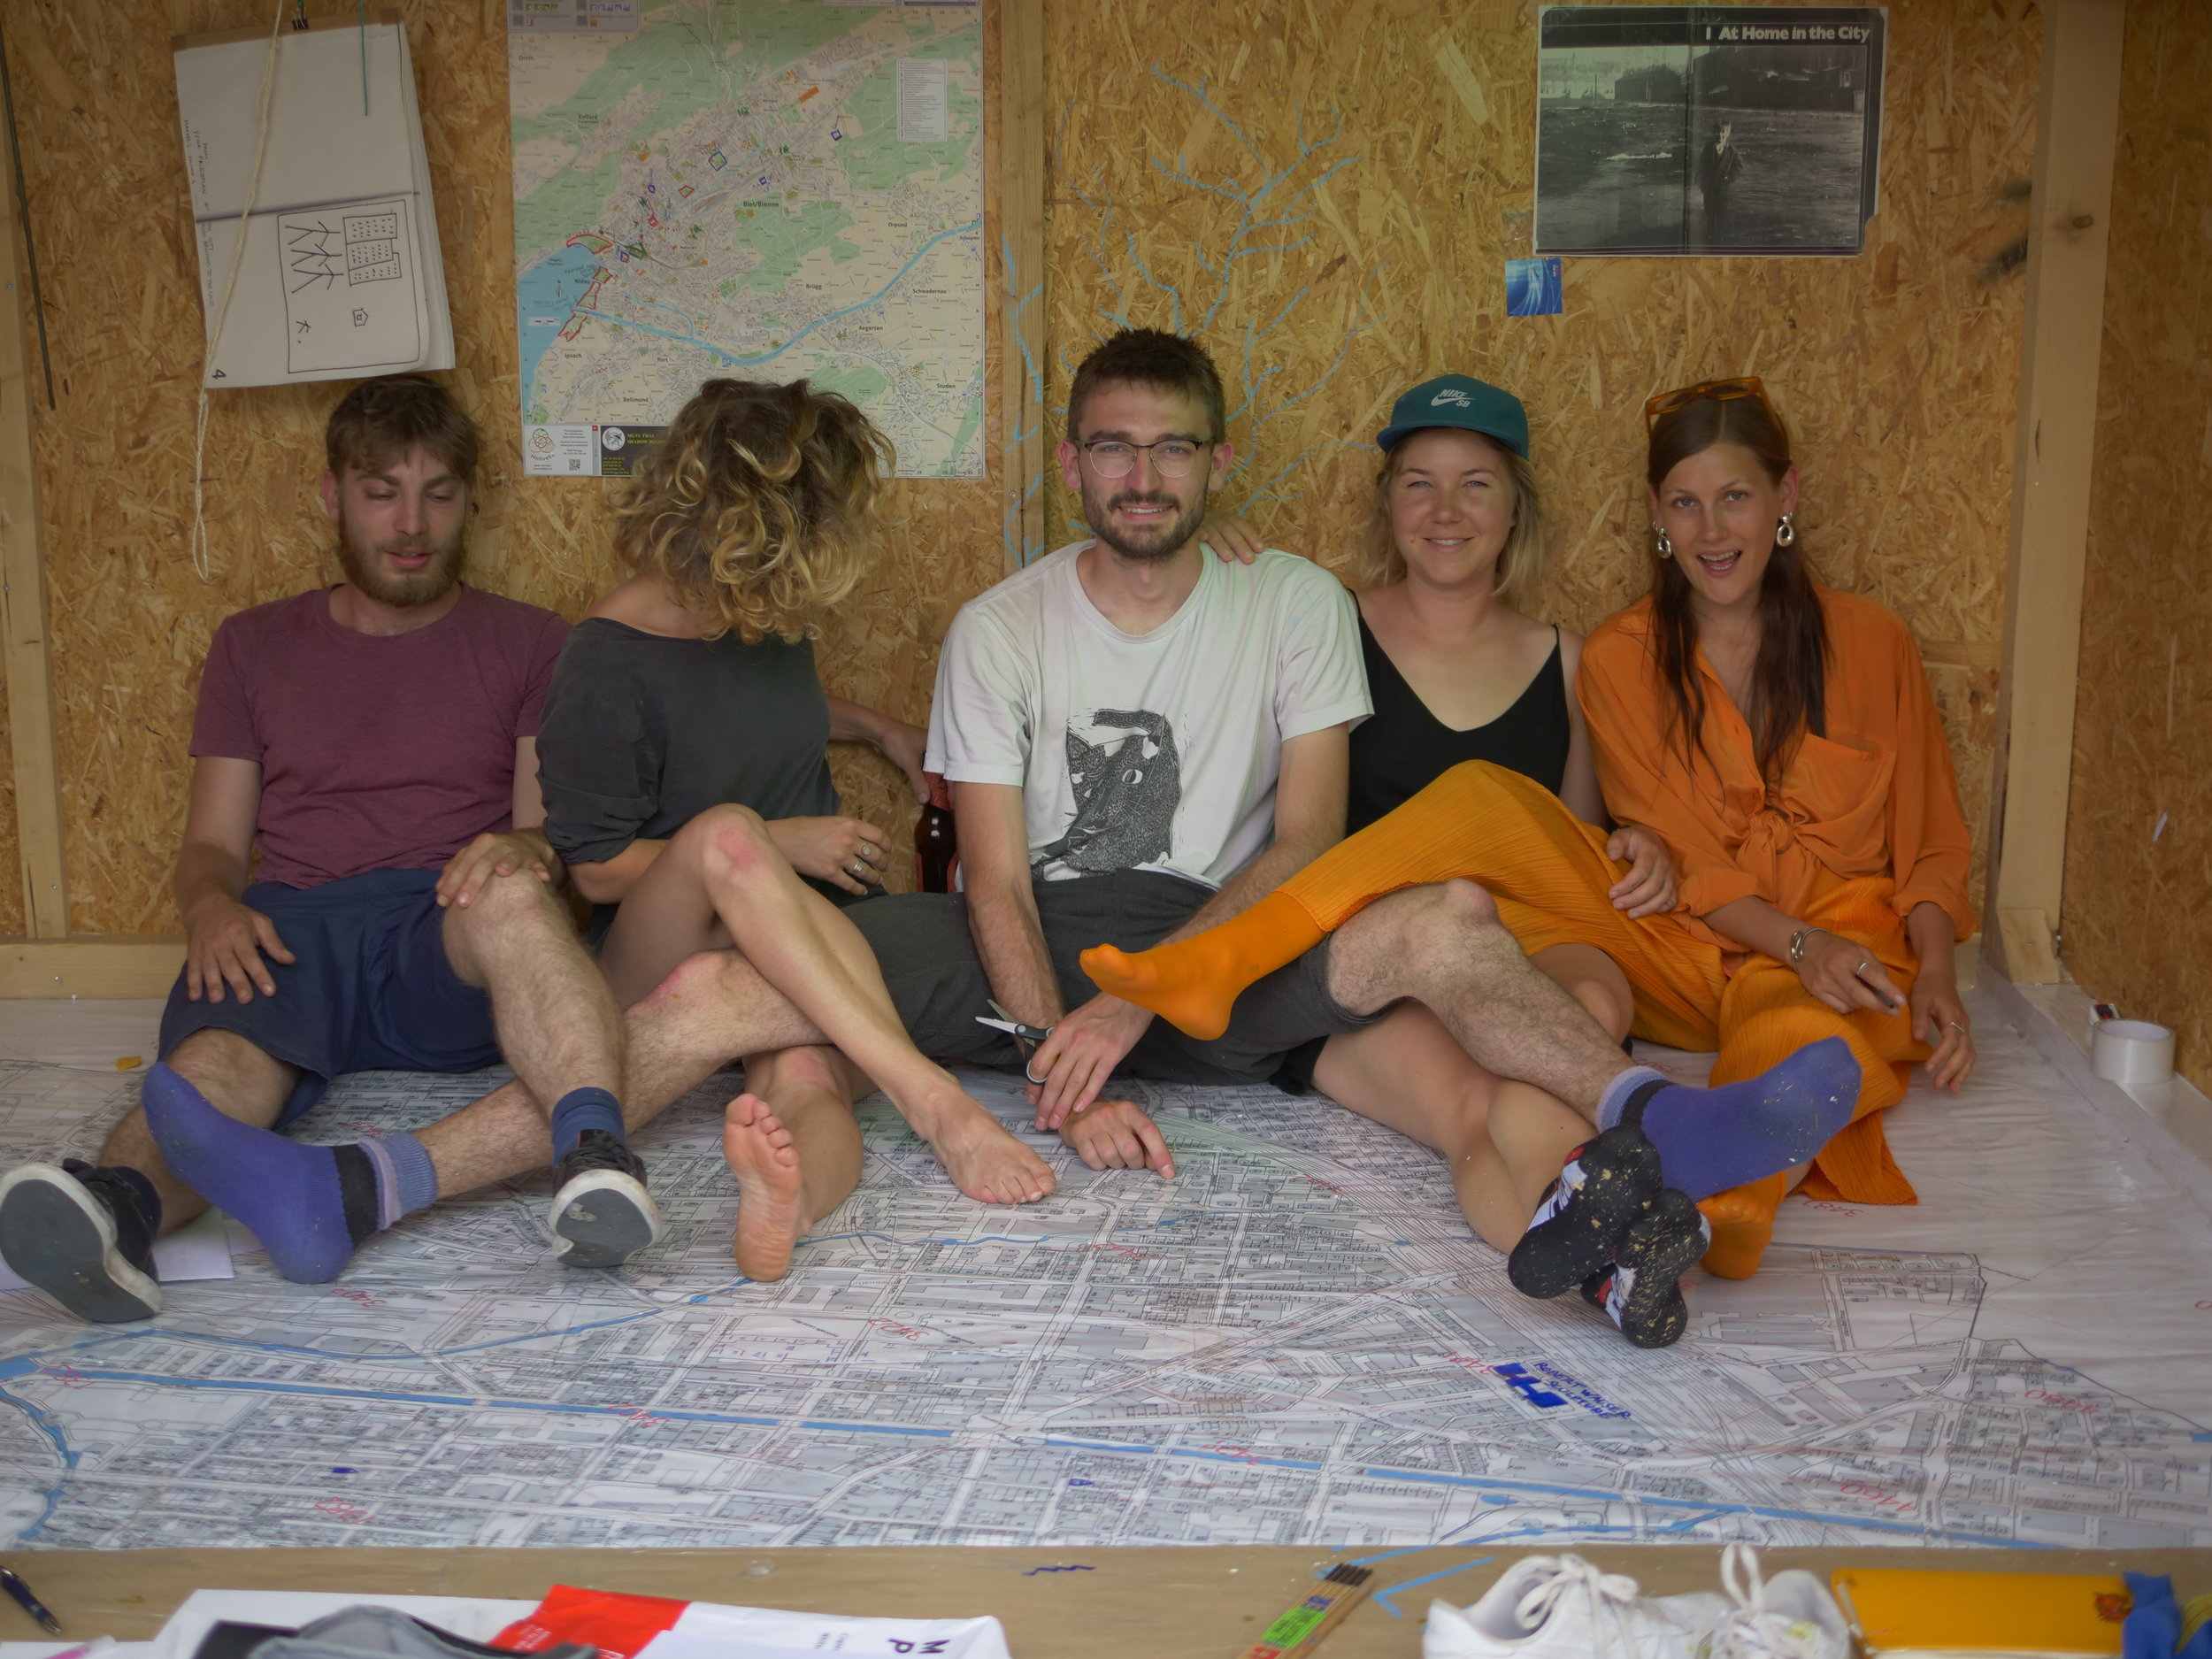 - Part 2Our last day altogether is saturated with enthusiasm, primarily about finishing the map on the floor. We begin to work on it upon arrival, catch on taking charge of specific corner or space, being mindful of each others bodies in the already small space.Charles and I begin a method where I plastify after he lays down the papers and it works well, albeit tedious. Delphine arrives and suggests we plastify together dissecting the action into tasks we each commit to, rendering it into a dance. We stretch, turn, twist, our bodies around the space sliding into a beautiful yet very interruptible rhythm. Think about the inherent choreographies of collective work that transpires when two bodies do something one body can do. It is this micro action that leads me to reflect upon the dynamism of the group, and how intricate the dance has become, a polyphonic entity that has just arrived in Bienne to sing its 86 day long hymn.